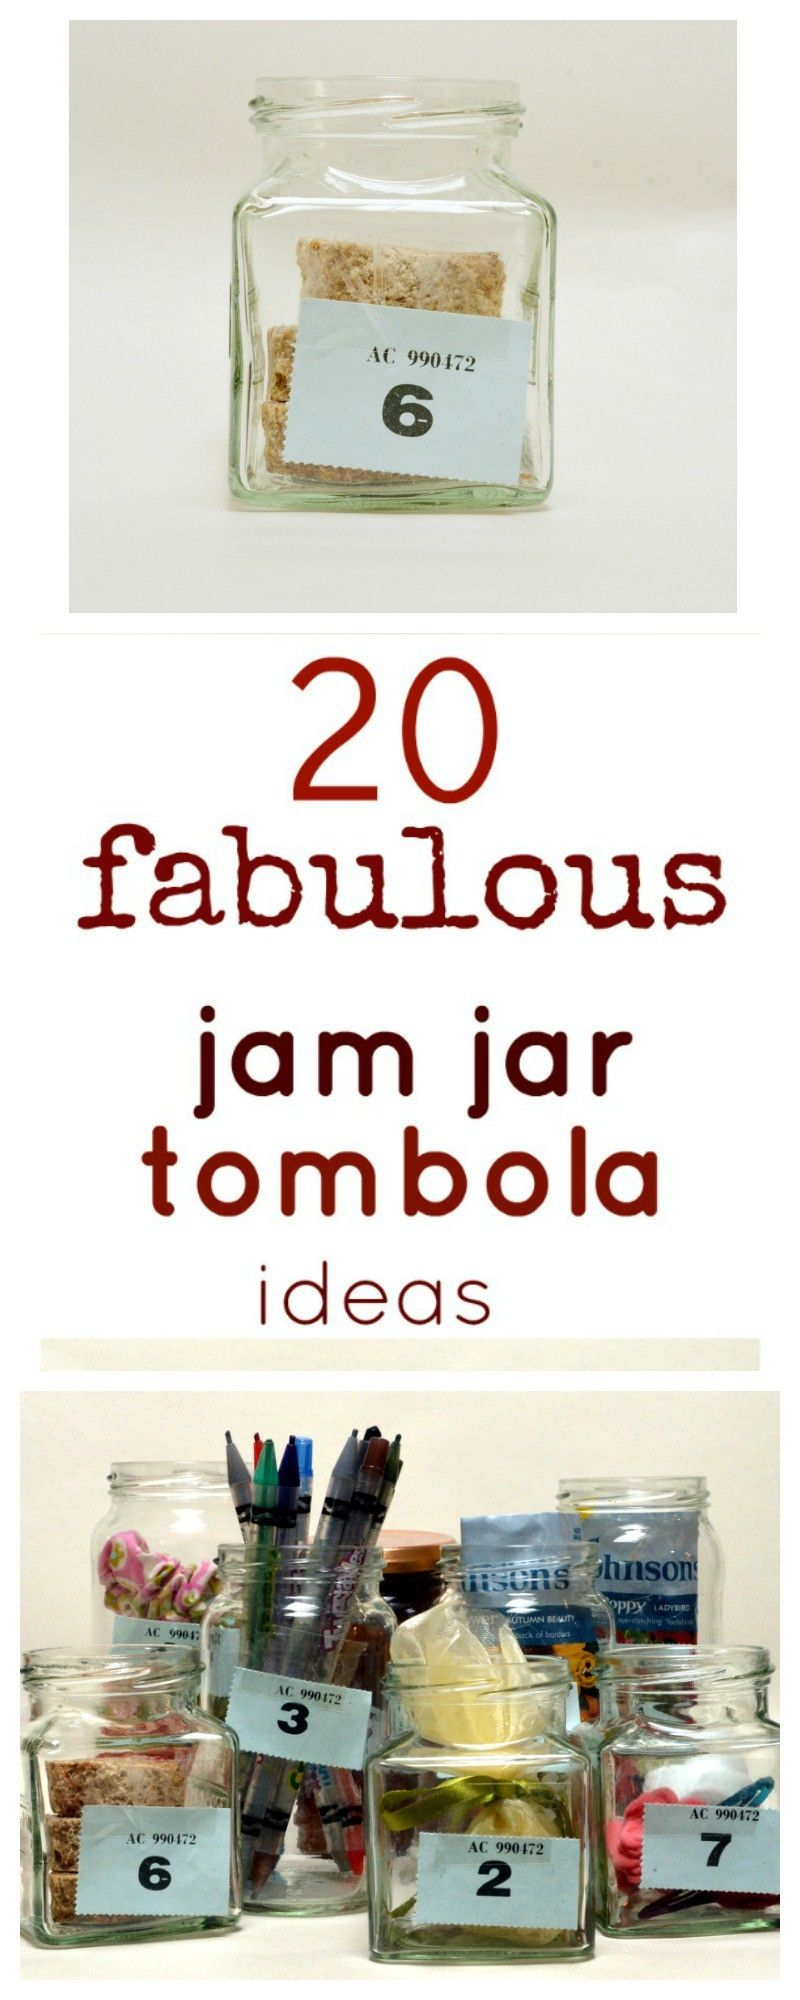 Fun Ideas For Filling Jam Jars For Fundraising Tombolas Charity Work Ideas Christmas Fundraising Ideas Charity Fundraising